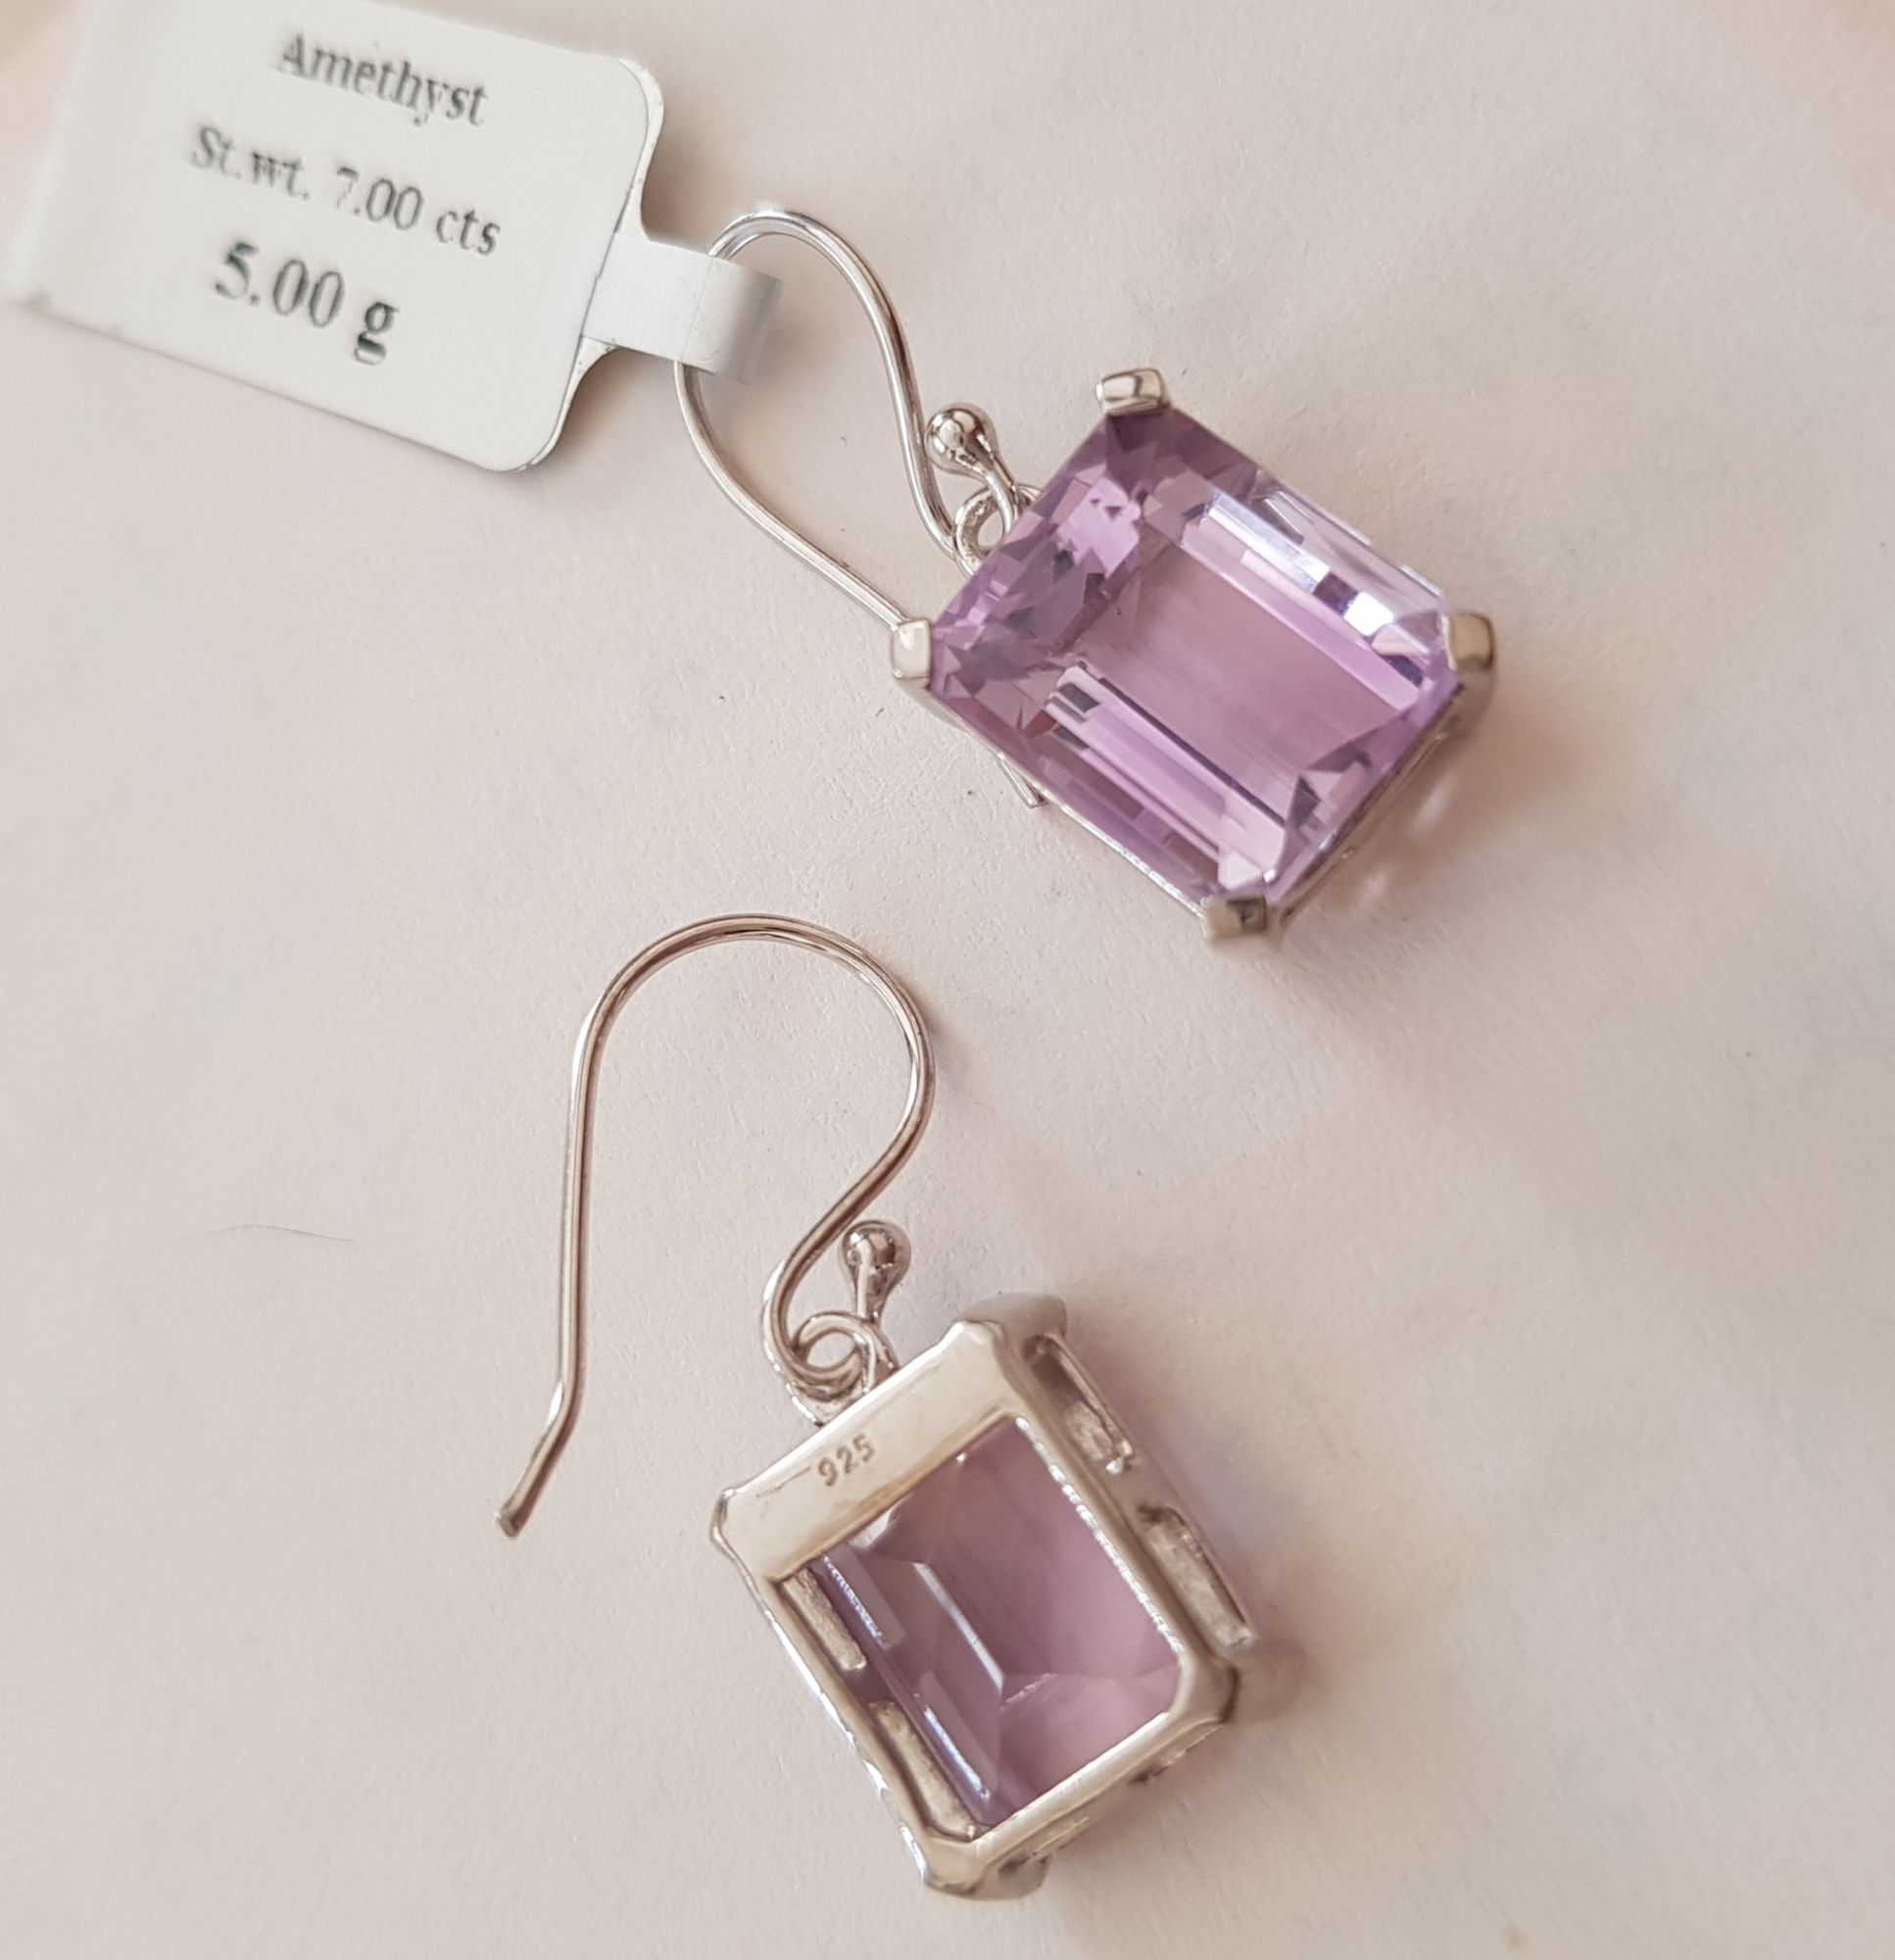 Amethyst octogan earwire earrings